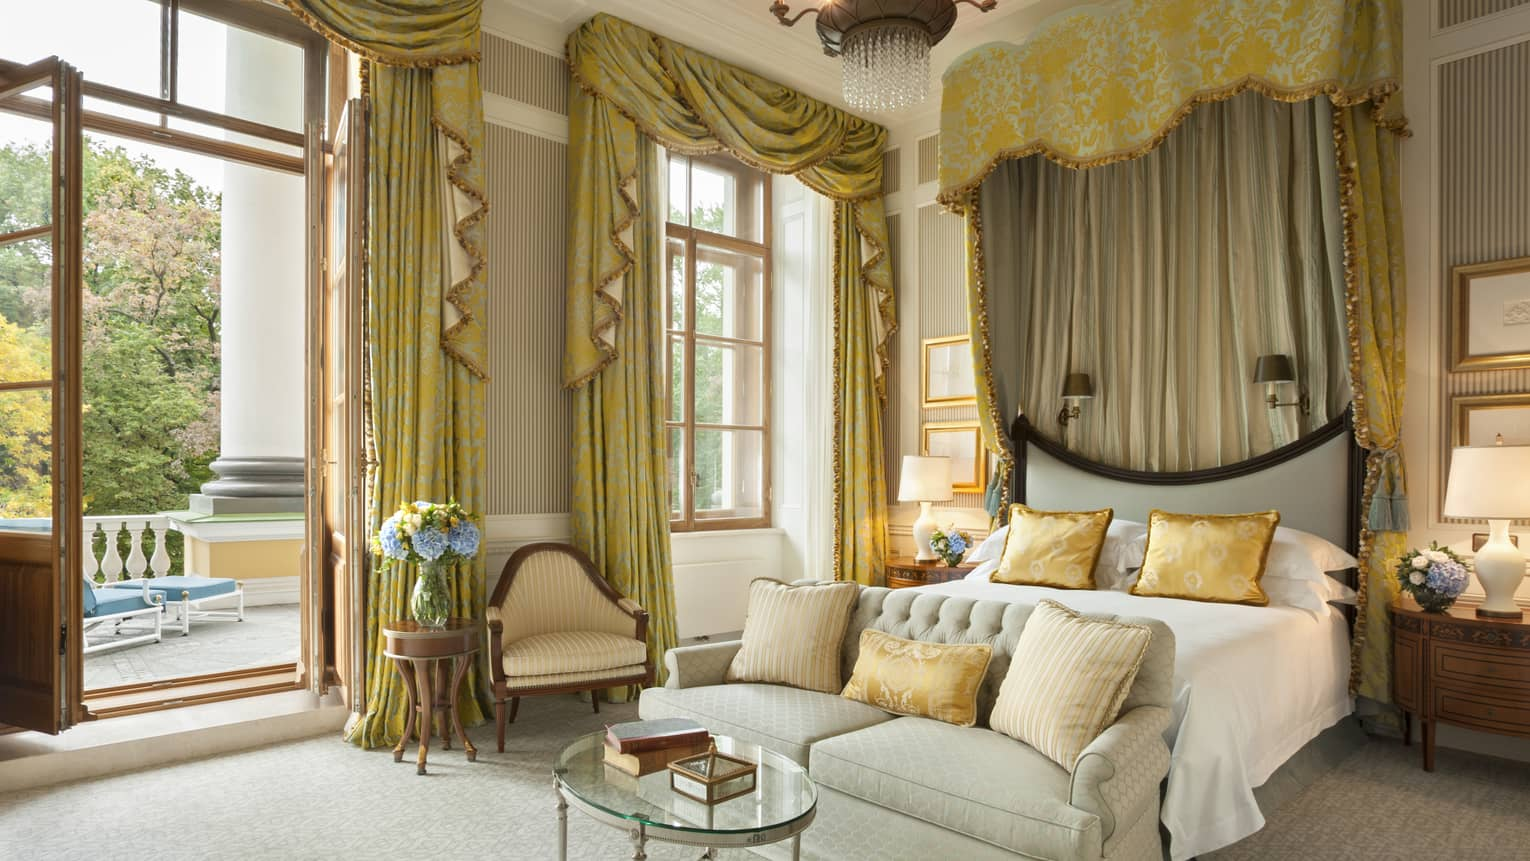 Presidential Suite master bedroom bed with loveseat at foot, gold curtains cascading from high ceilings